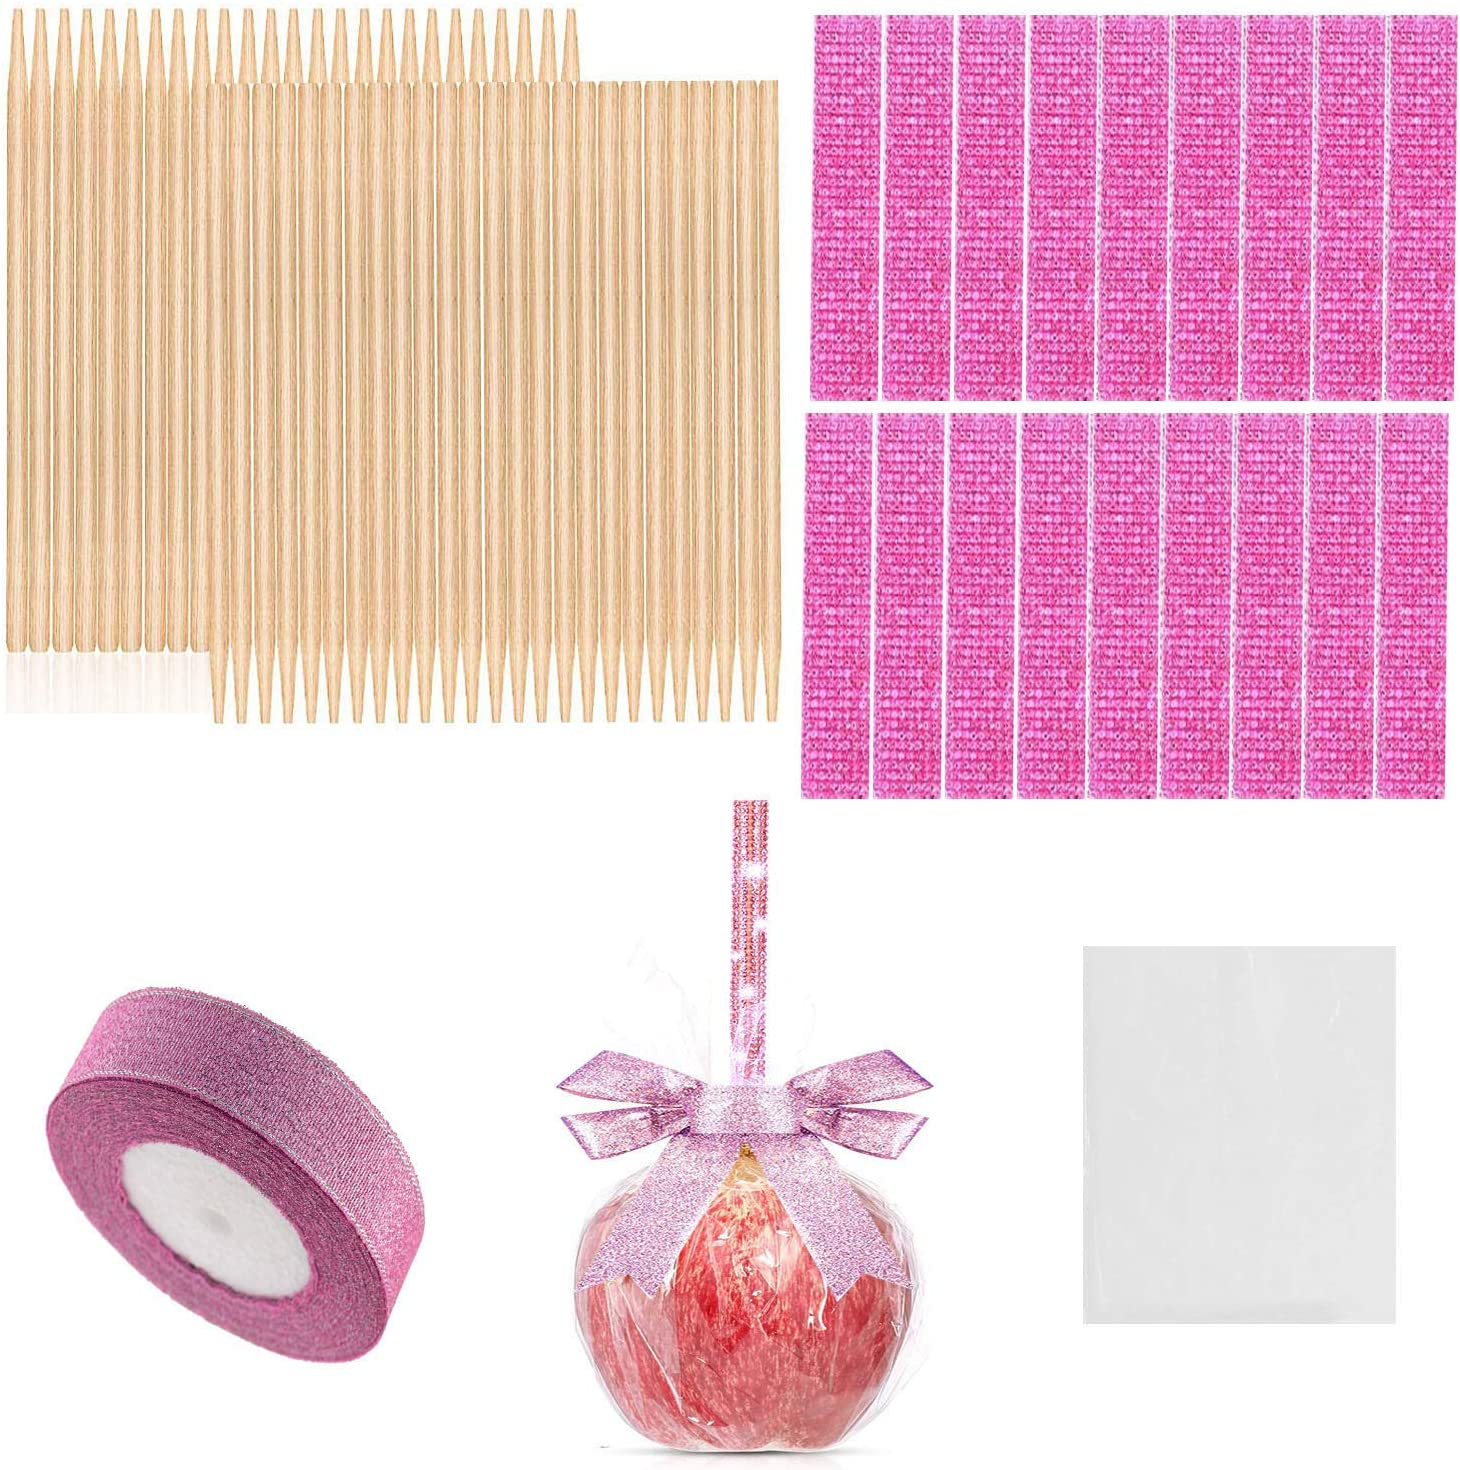 126 Pieces Candy Making Accessory for Festival Party, 50 Pcs Bamboo Candy Sticks, 25 Bling Bling Rhinestone Sticker, 50 Candy Glass Paper, 1 Roll 25 Yard Glitter Ribbon (Gold/Pink) (Pink)